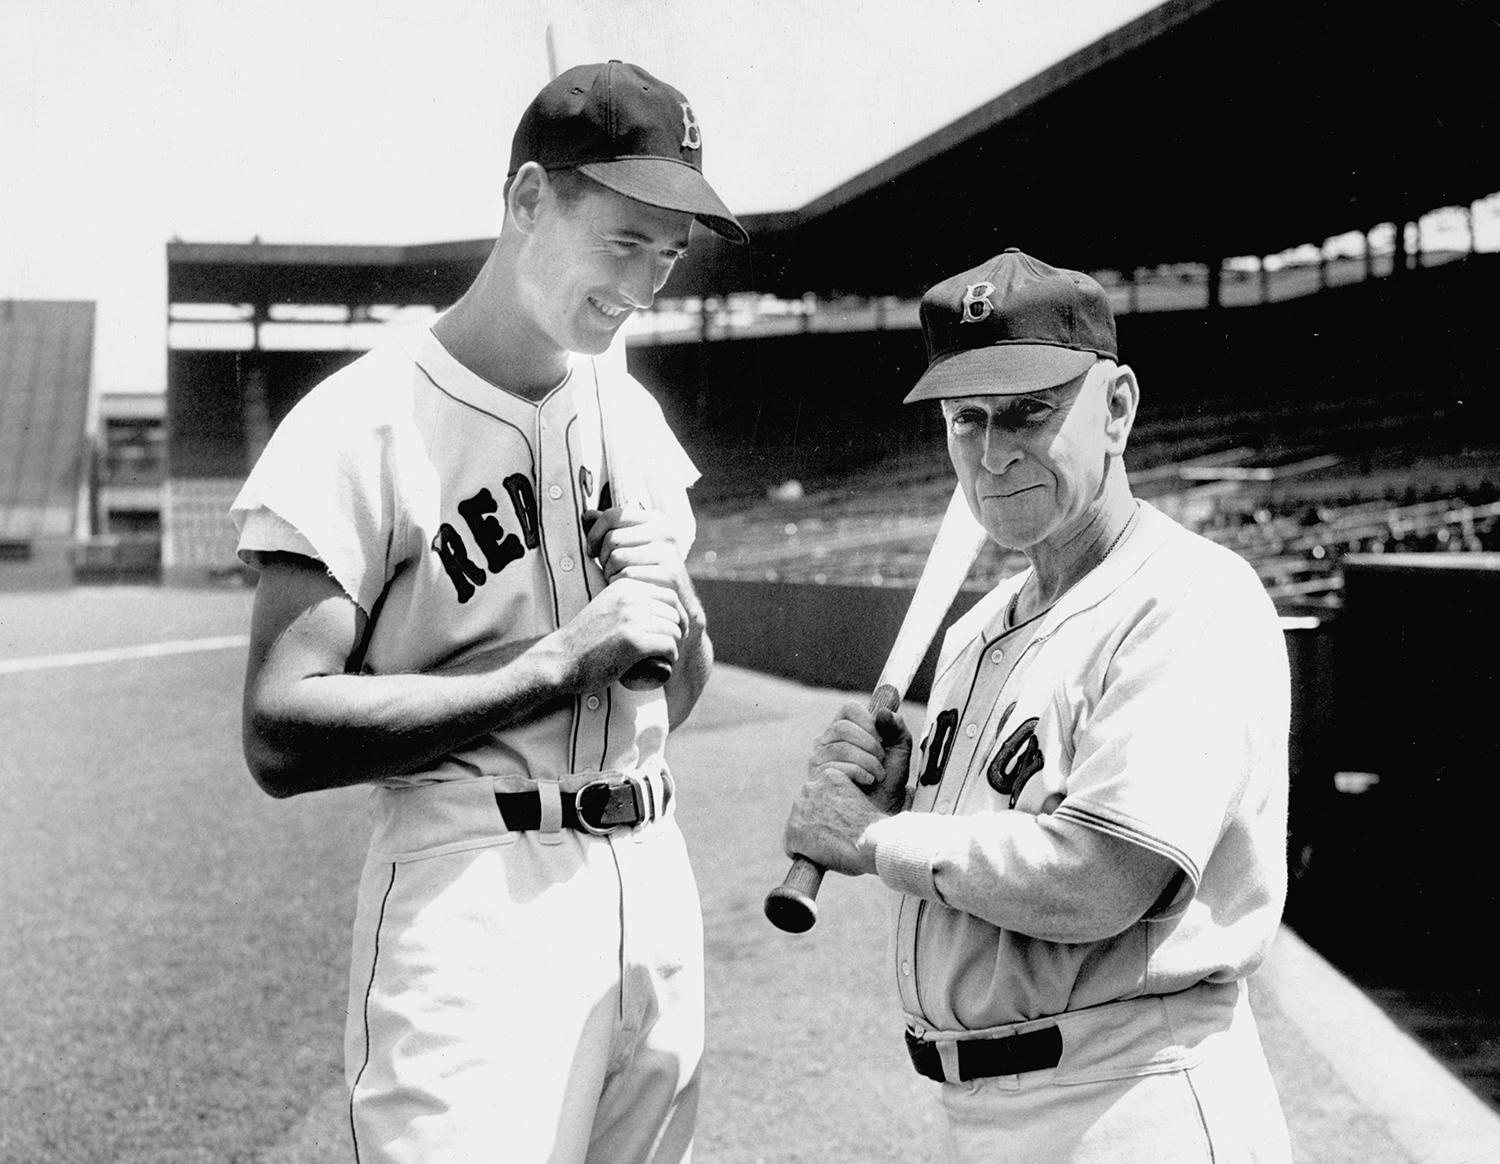 """Hugh Duffy (right), who set the record for the highest batting average in a single season with .440, told Shirley Povich of the <em> Washington Post</em>, that """"until Williams came along, I thought my record was safe forever...I didn't think anybody would come close, but now this Williams comes along and I don't think it's out of his reach."""" (National Baseball Hall of Fame)"""